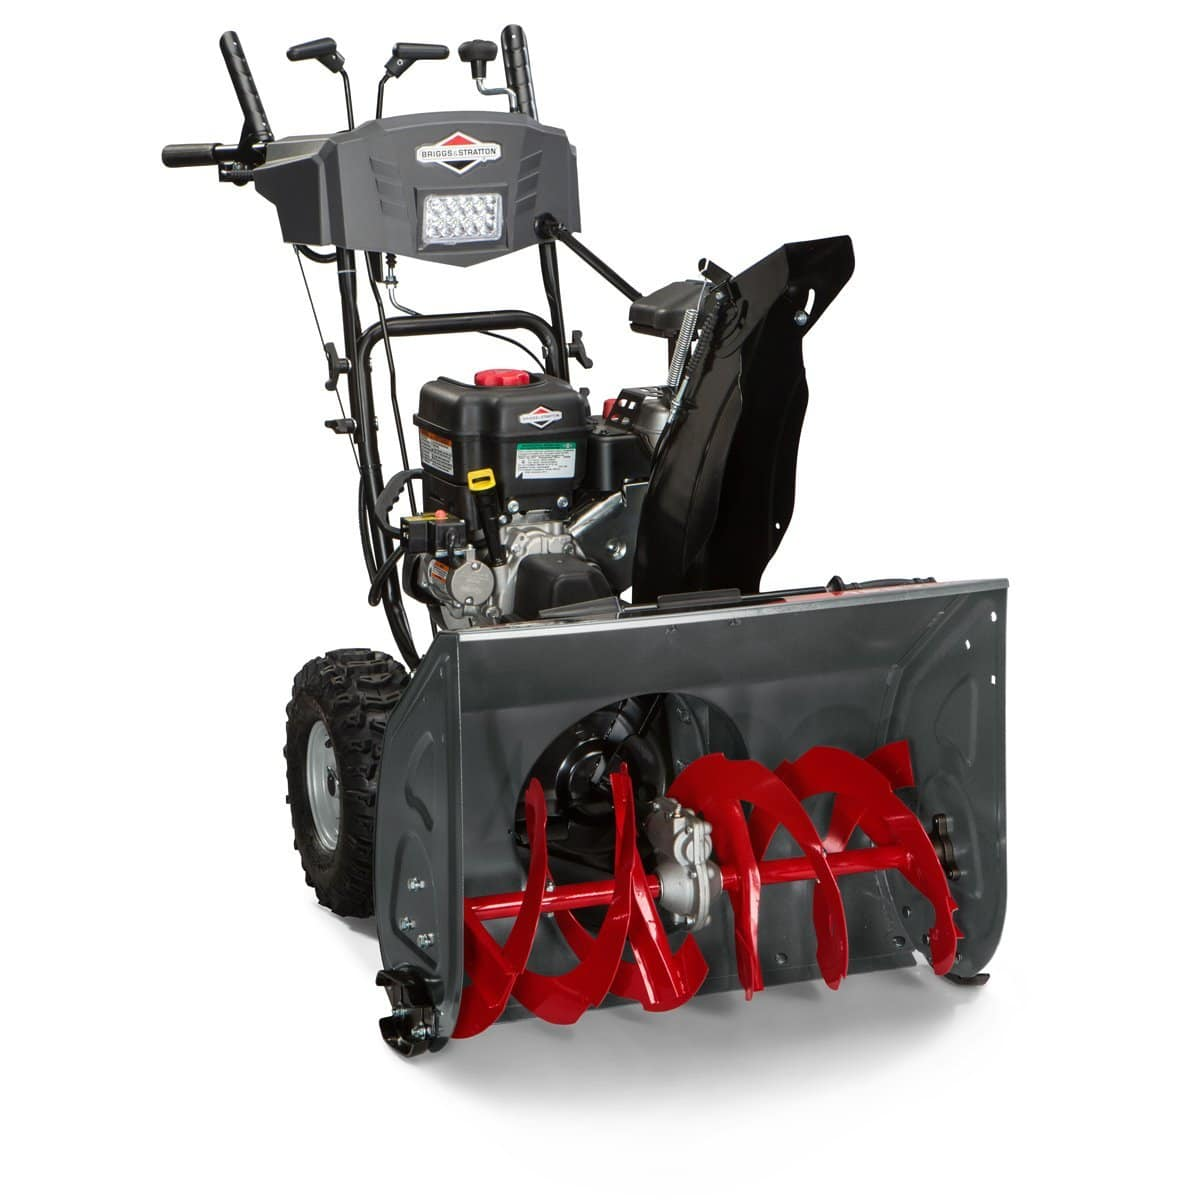 Snow Blower 24 >> [NEW ]Best 2 stage snow blower Reviews: Top 10 Picks For 2016